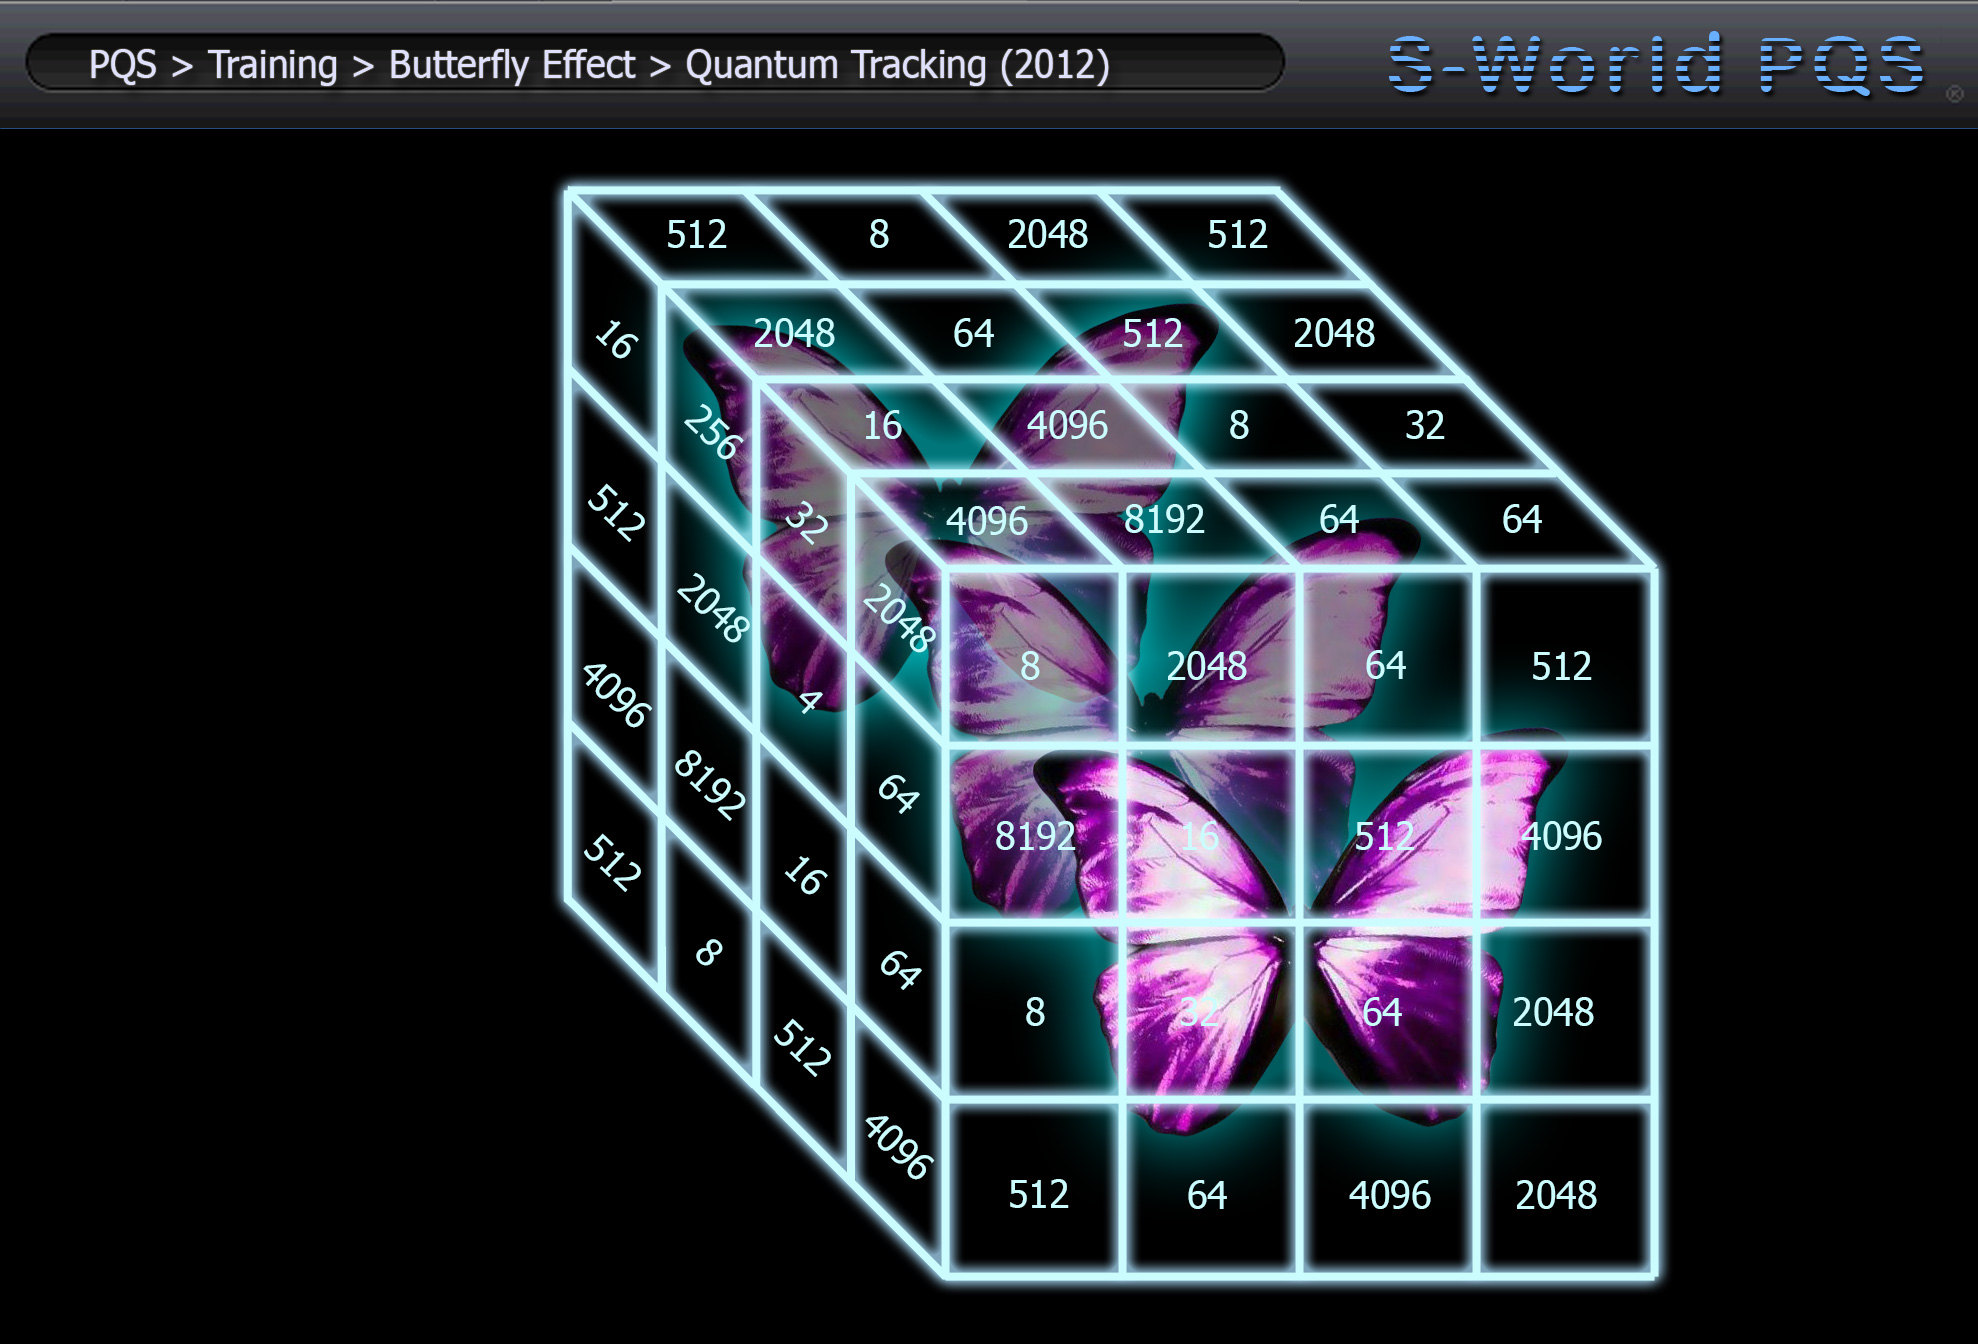 PQS---Butterfly